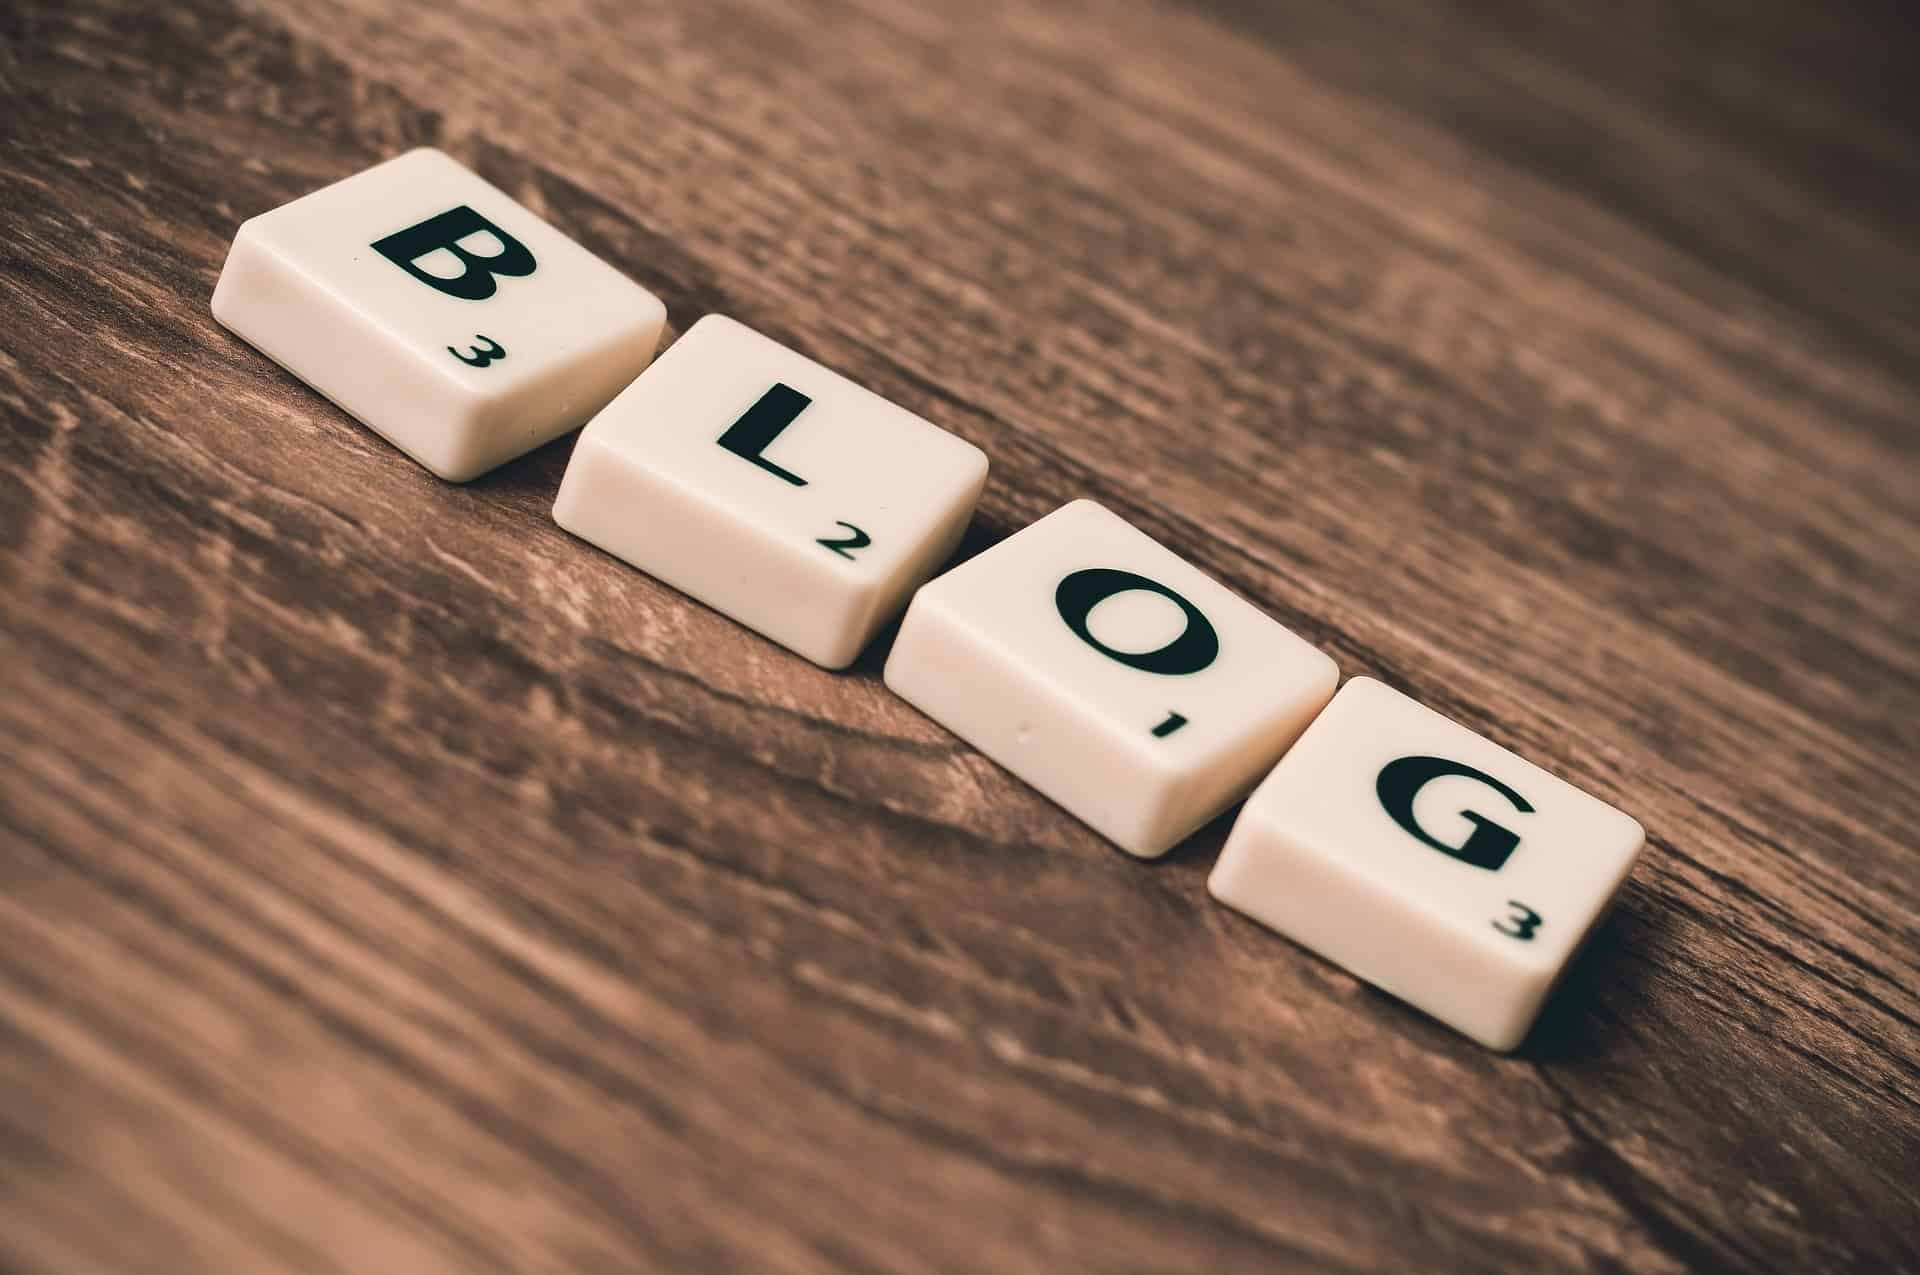 Reasons No One Knows (Or Cares) About Your Blog